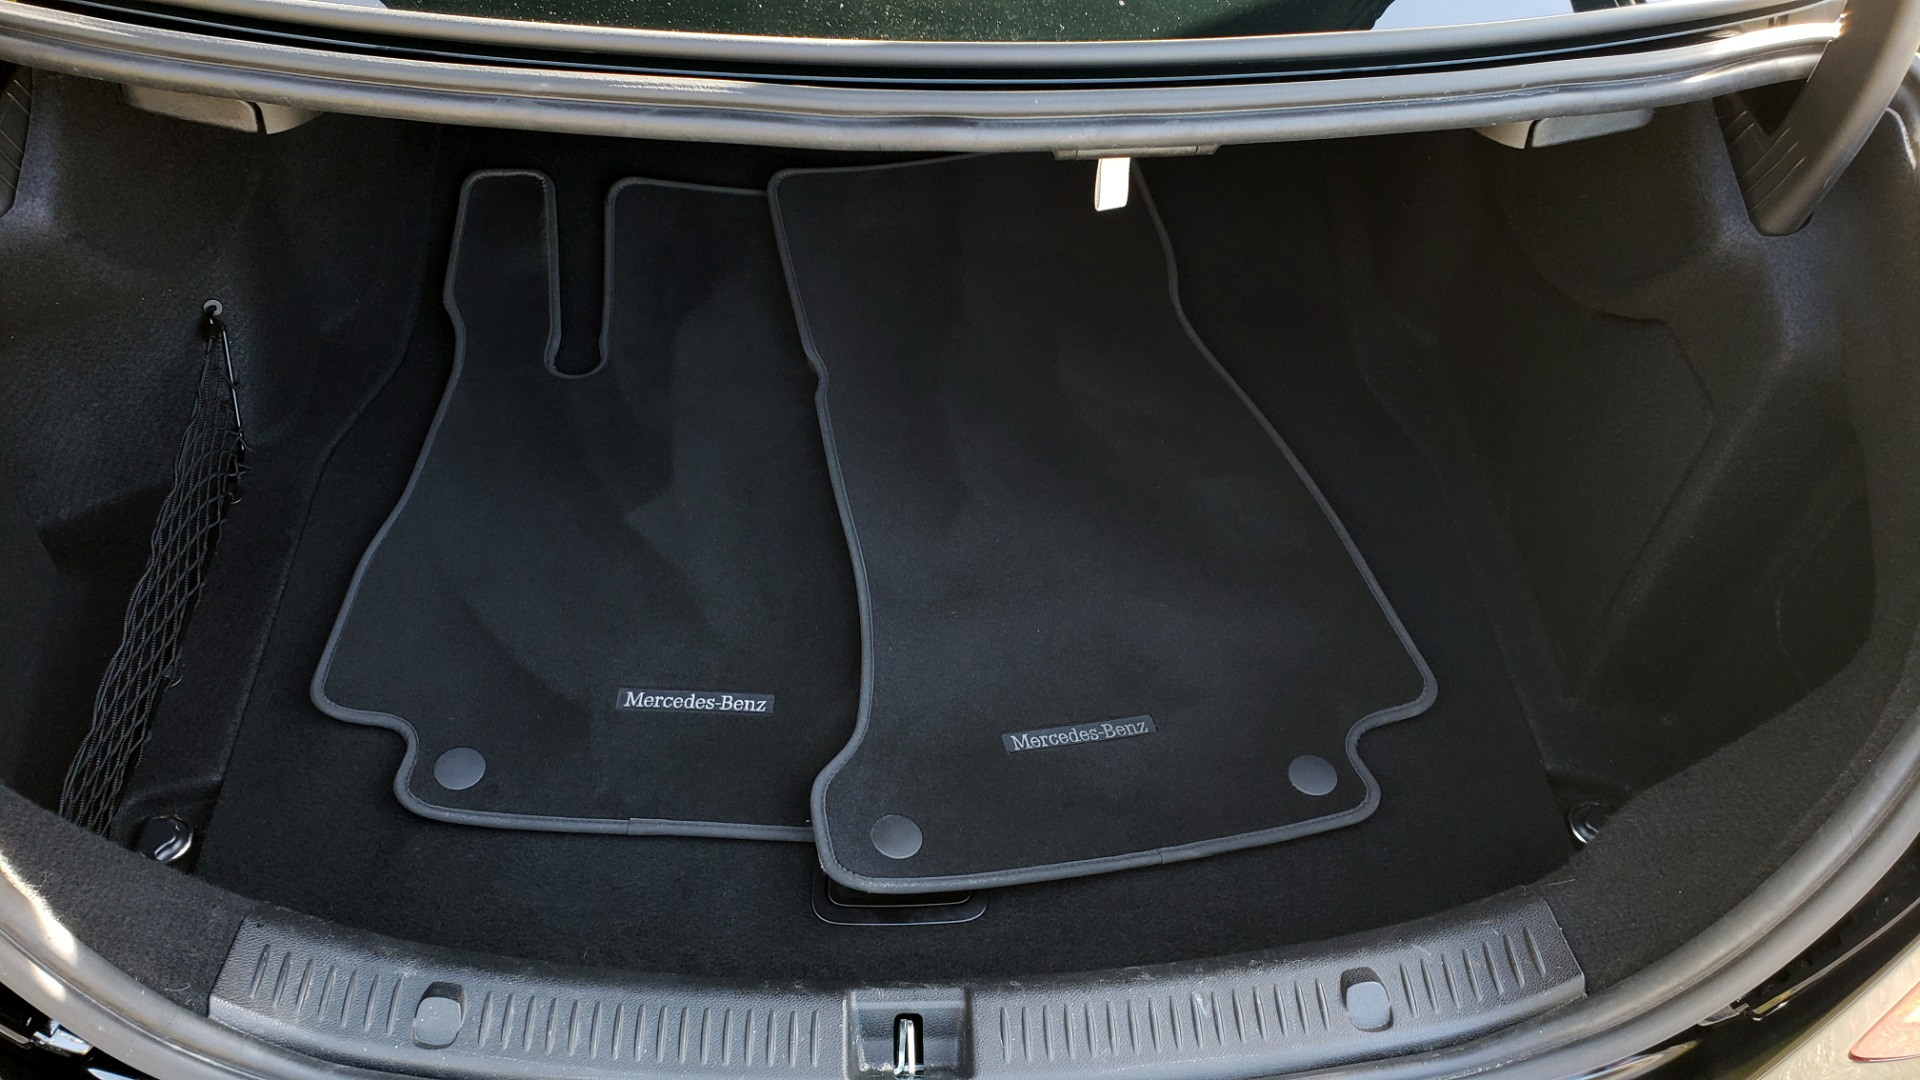 Used 2017 Mercedes-Benz E-CLASS E 300 PREMIUM / NAV / SUNROOF / BURMESTER / HTD STS / REARVIEW for sale Sold at Formula Imports in Charlotte NC 28227 13